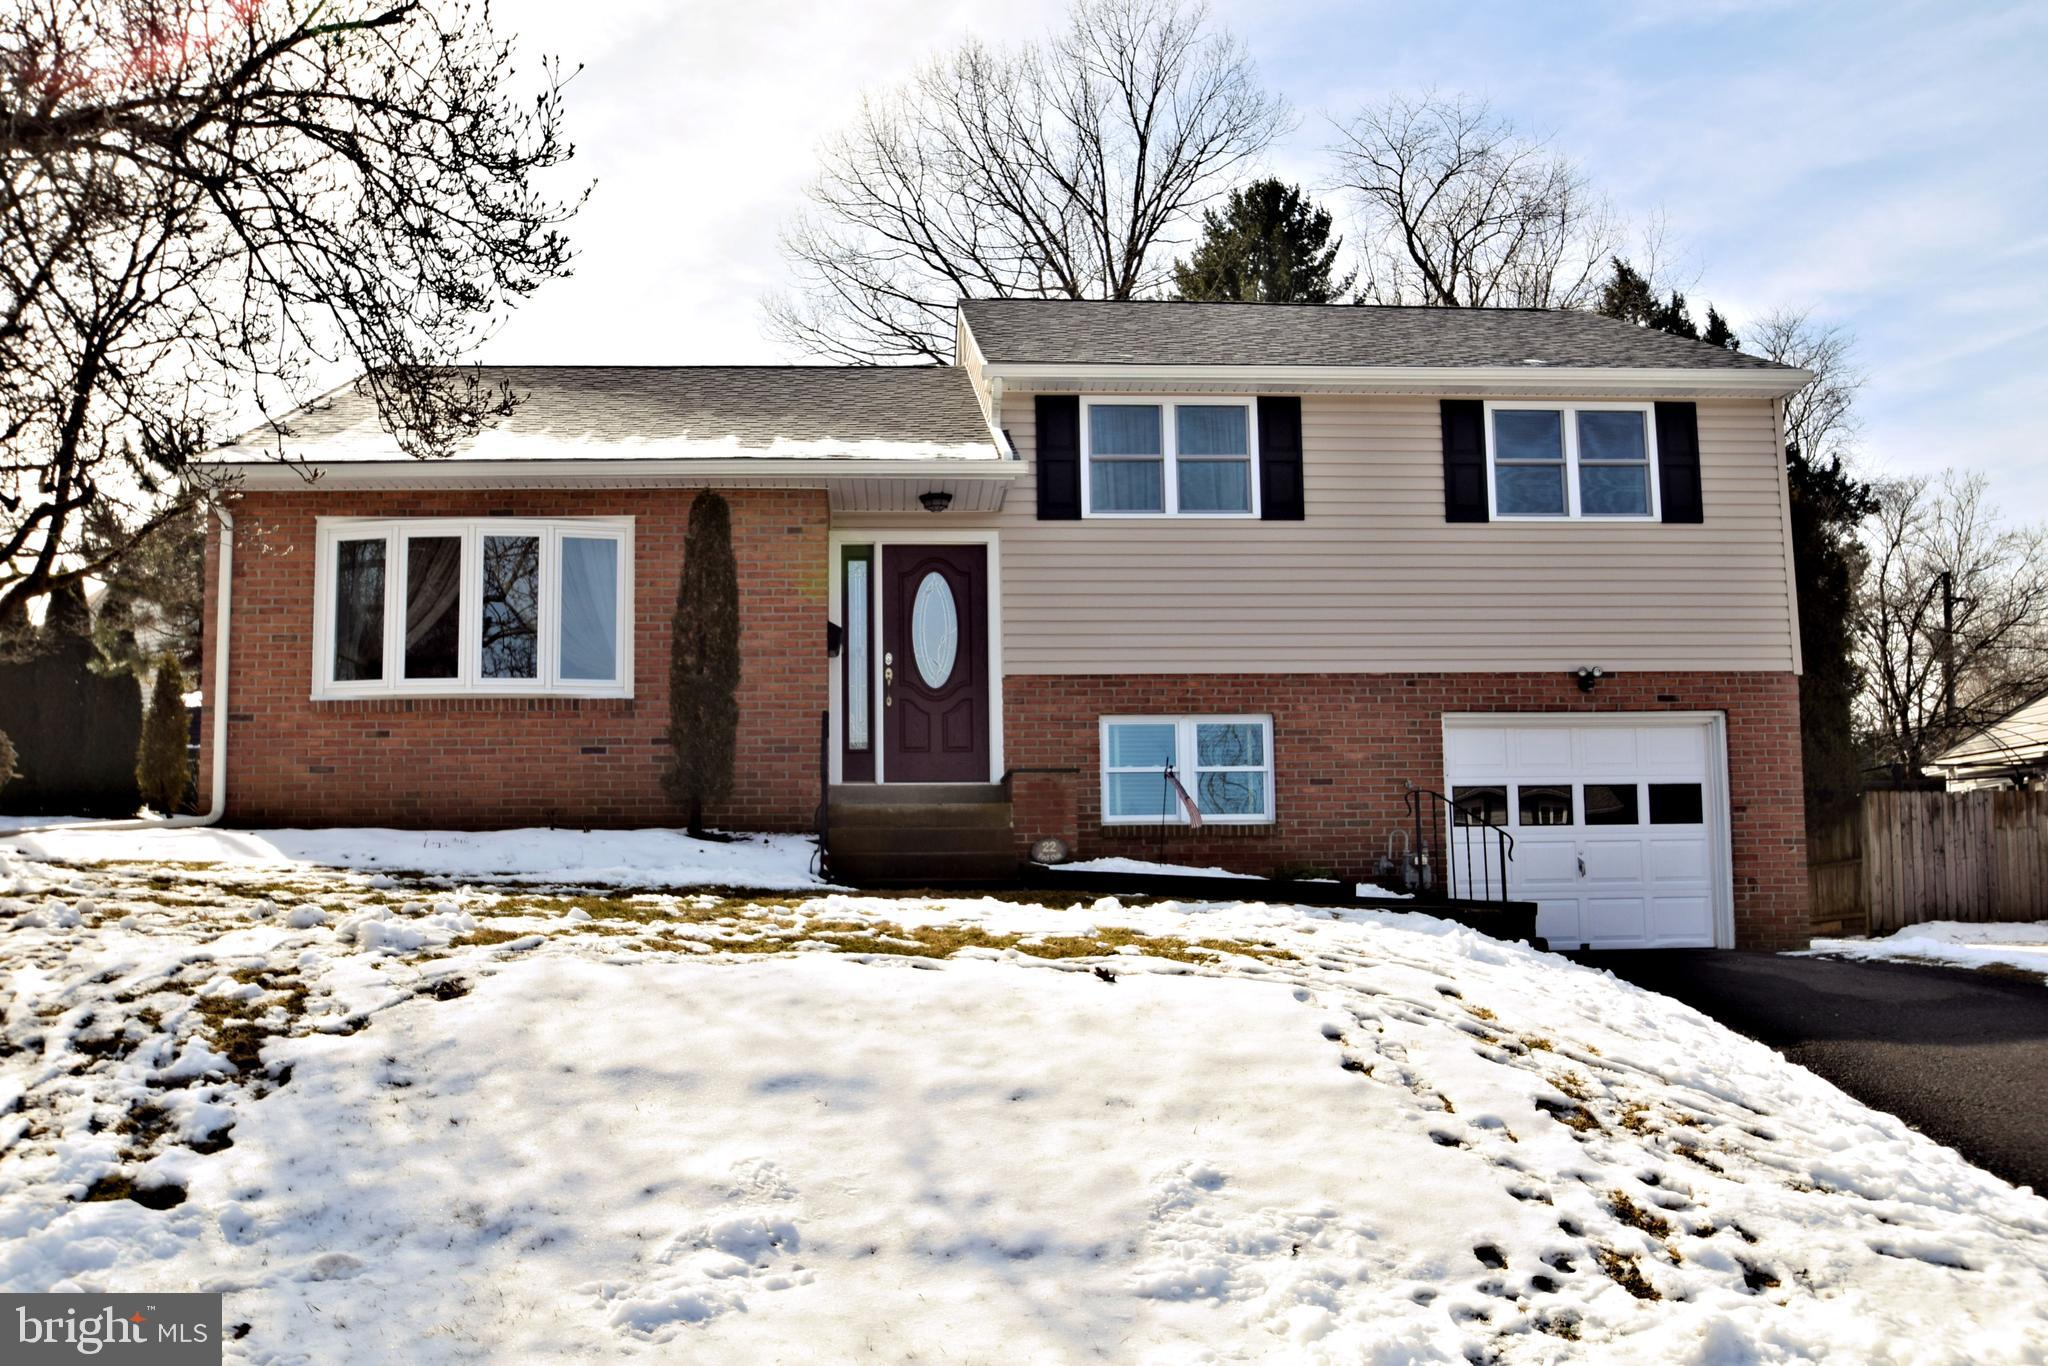 22 RED OAK ROAD, ORELAND, PA 19075